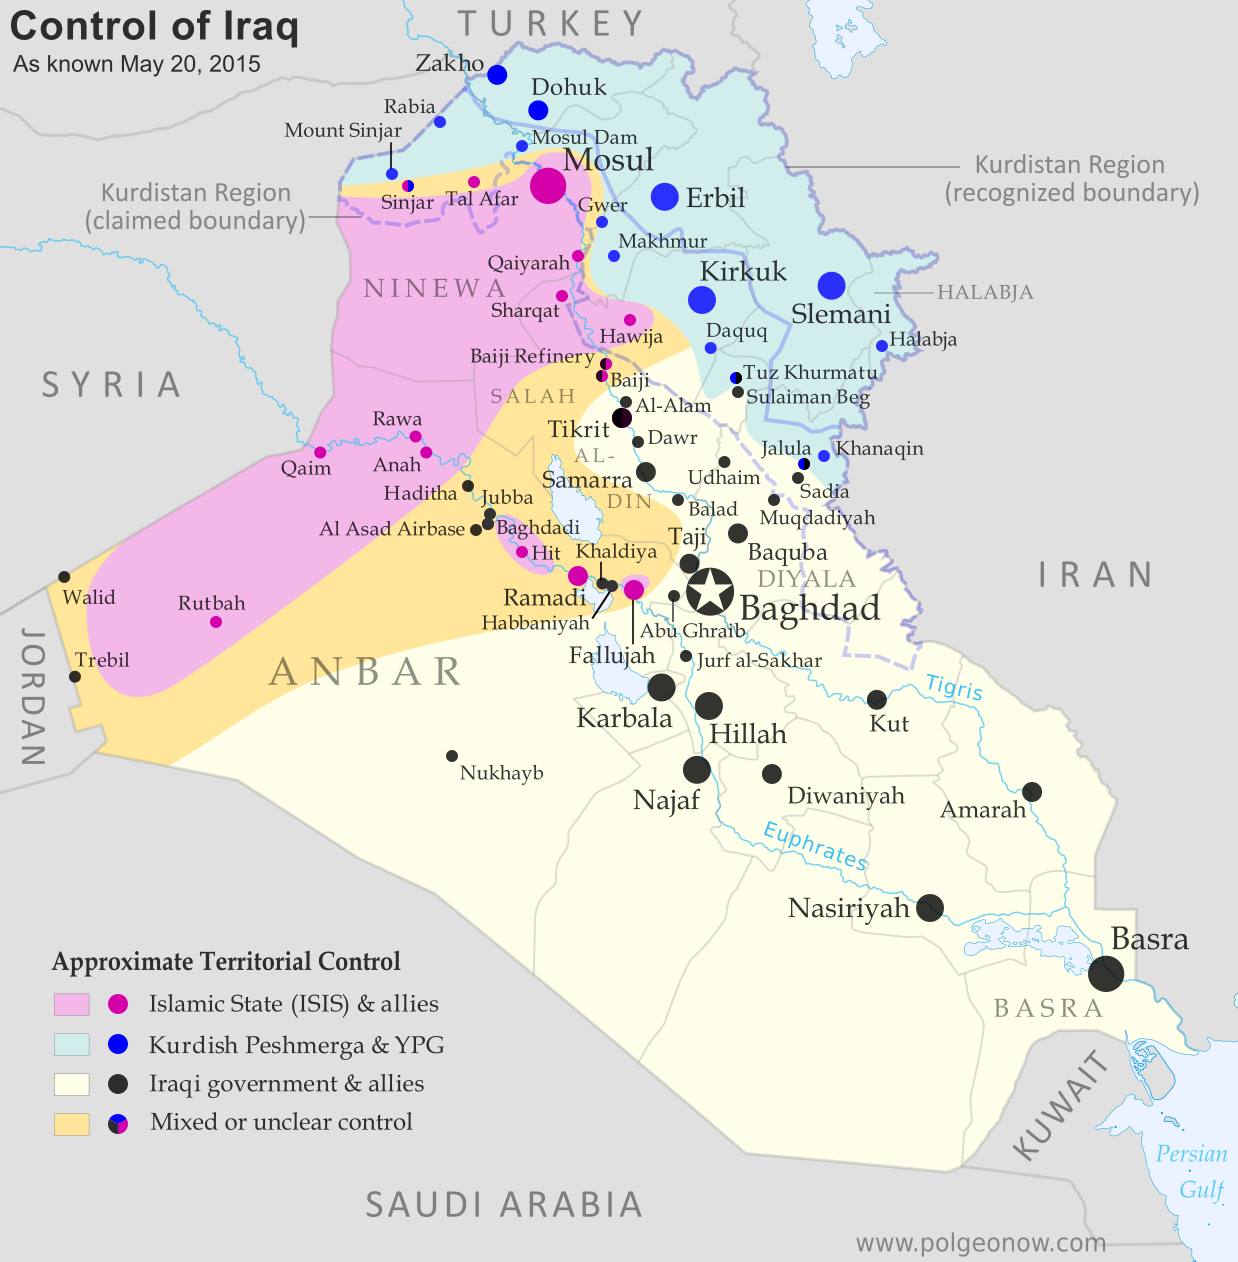 Detailed map of territorial control in Iraq as of May 20 2015